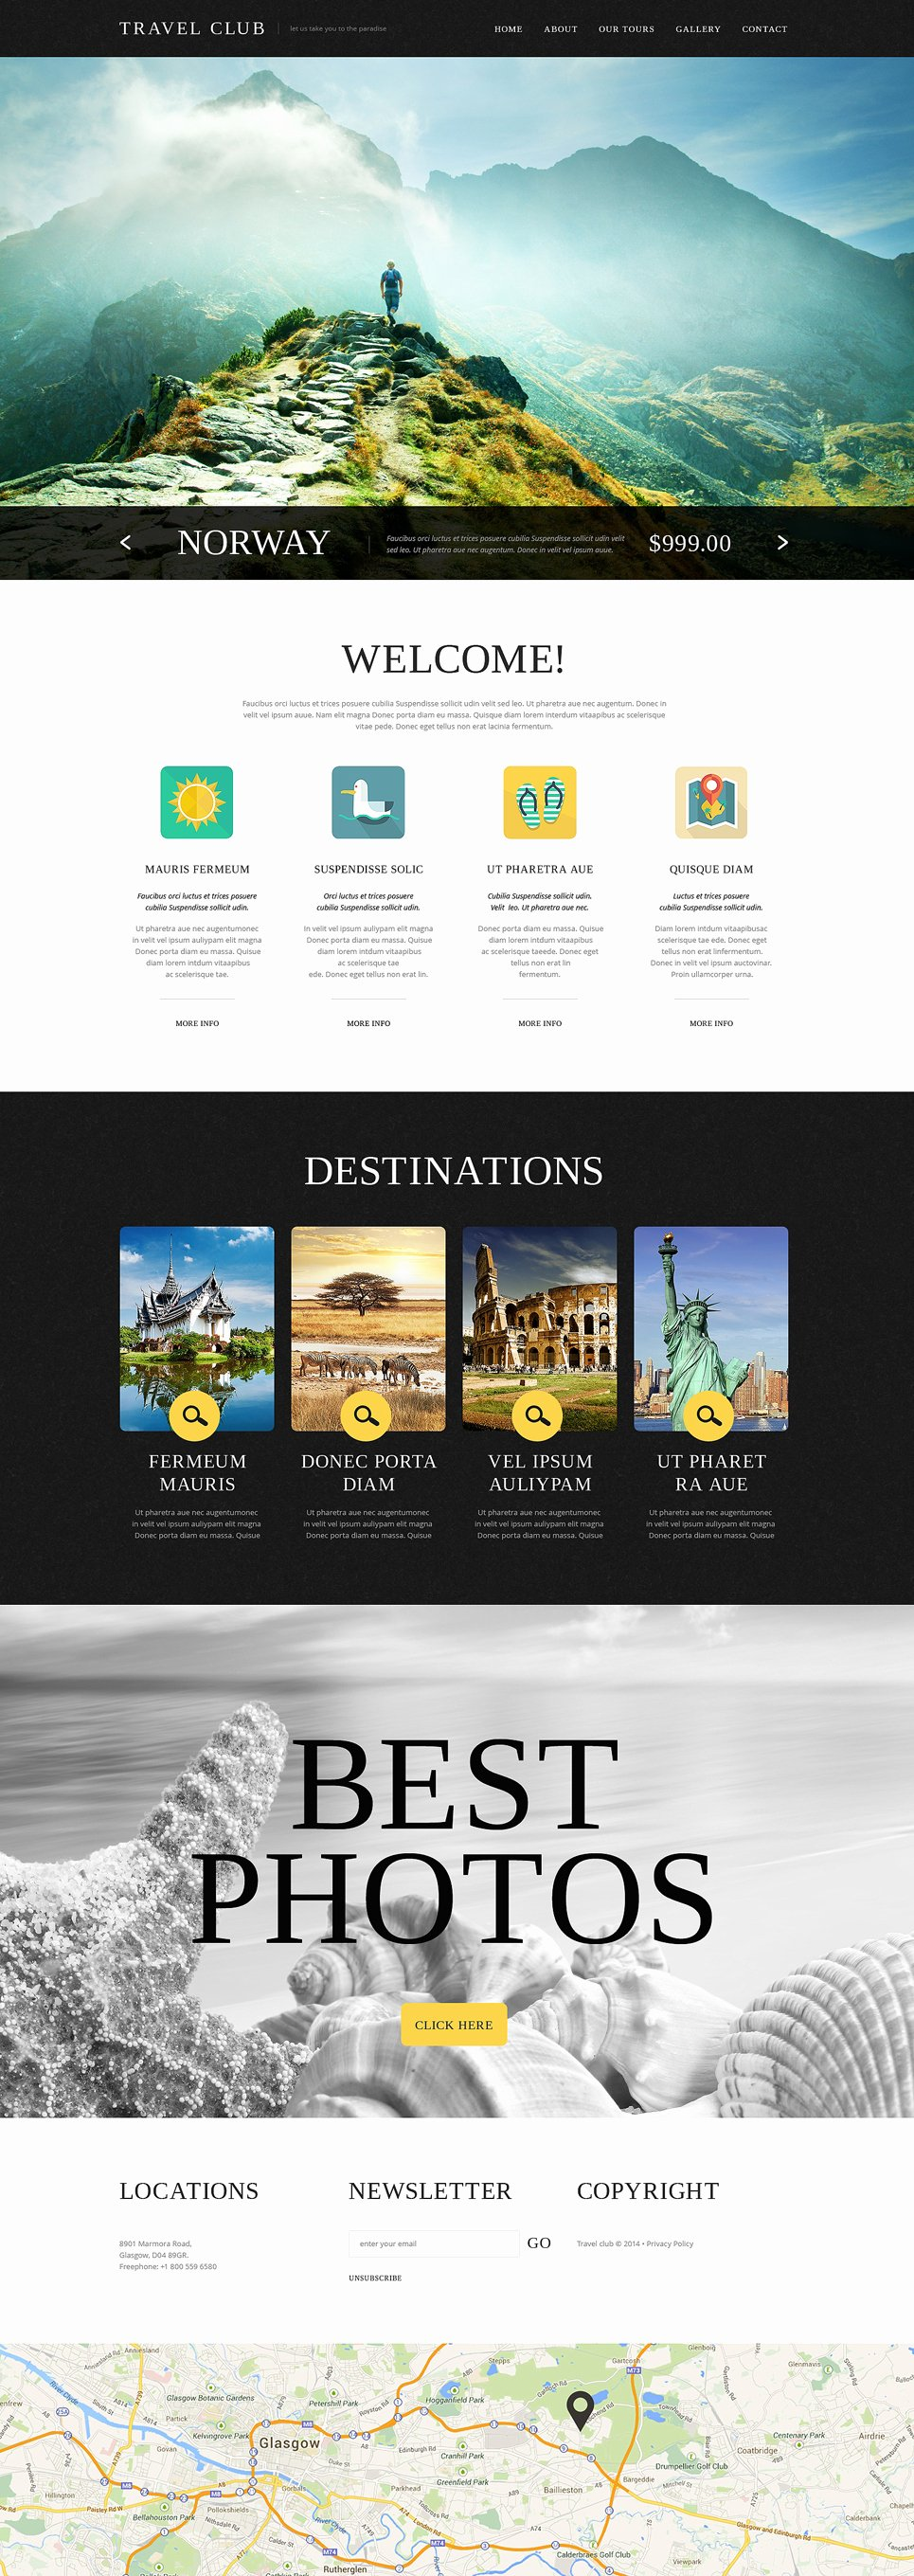 Travel Agency Web Template Lovely Travel Agency Website Template